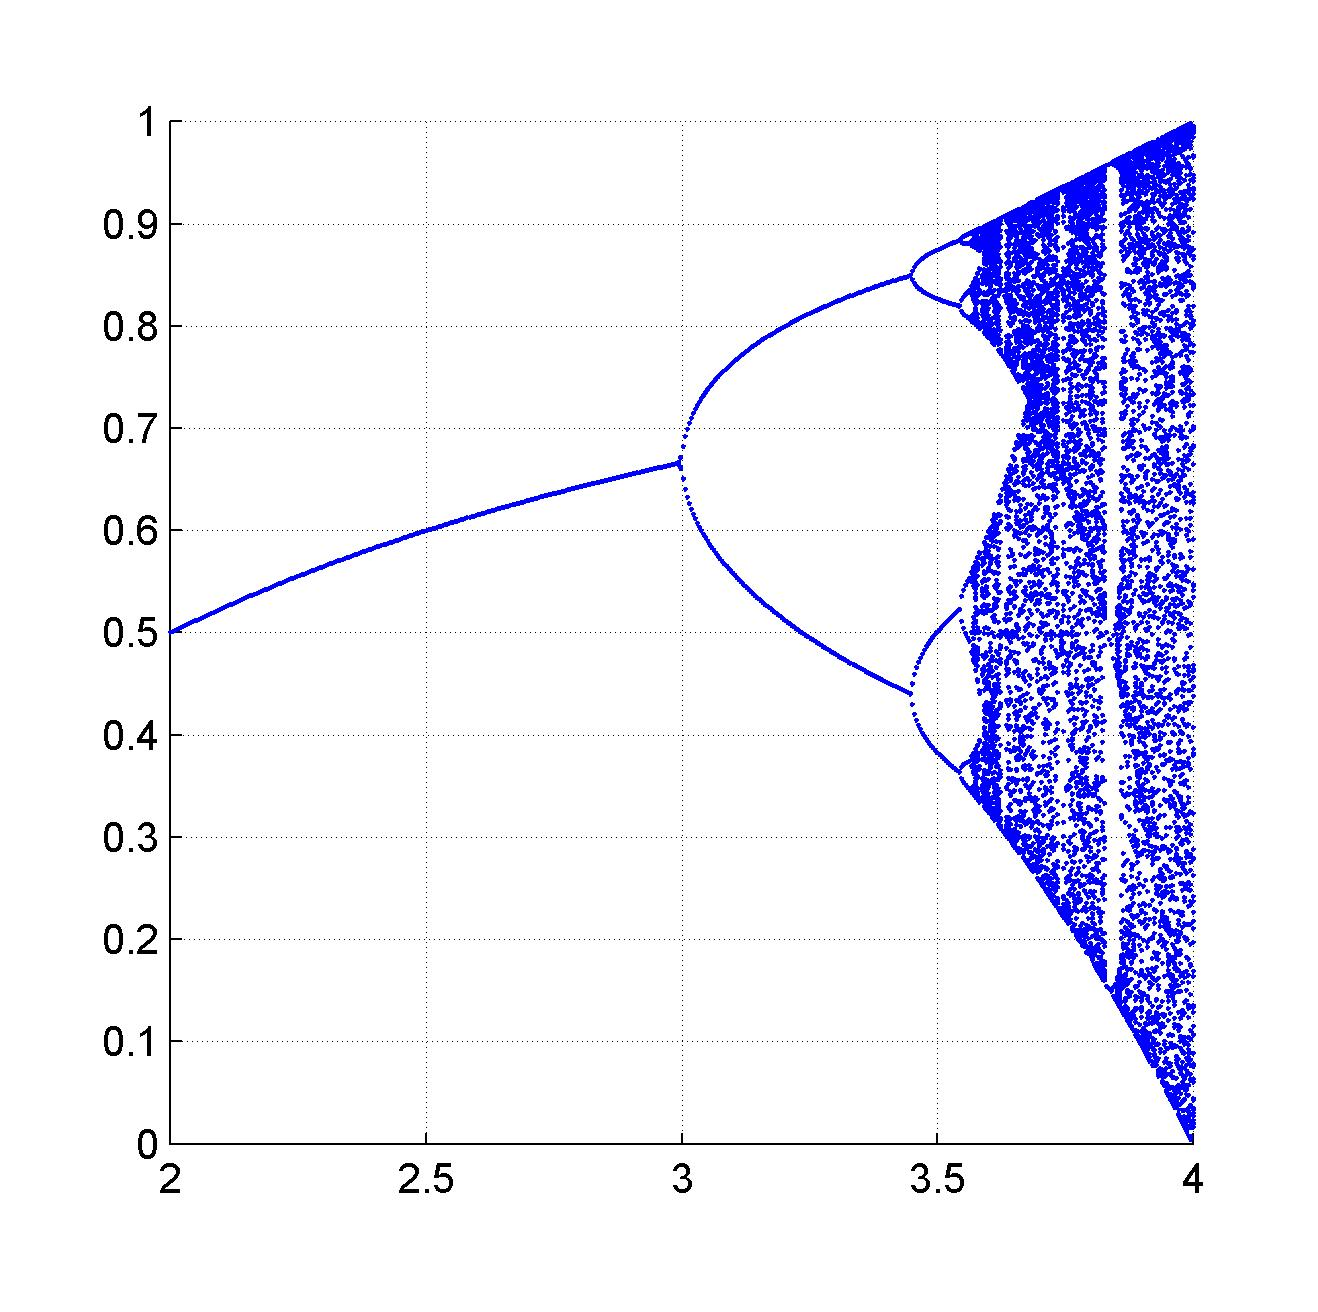 1d bifurcation plot file exchange matlab central 1d bifurcation plot ccuart Gallery